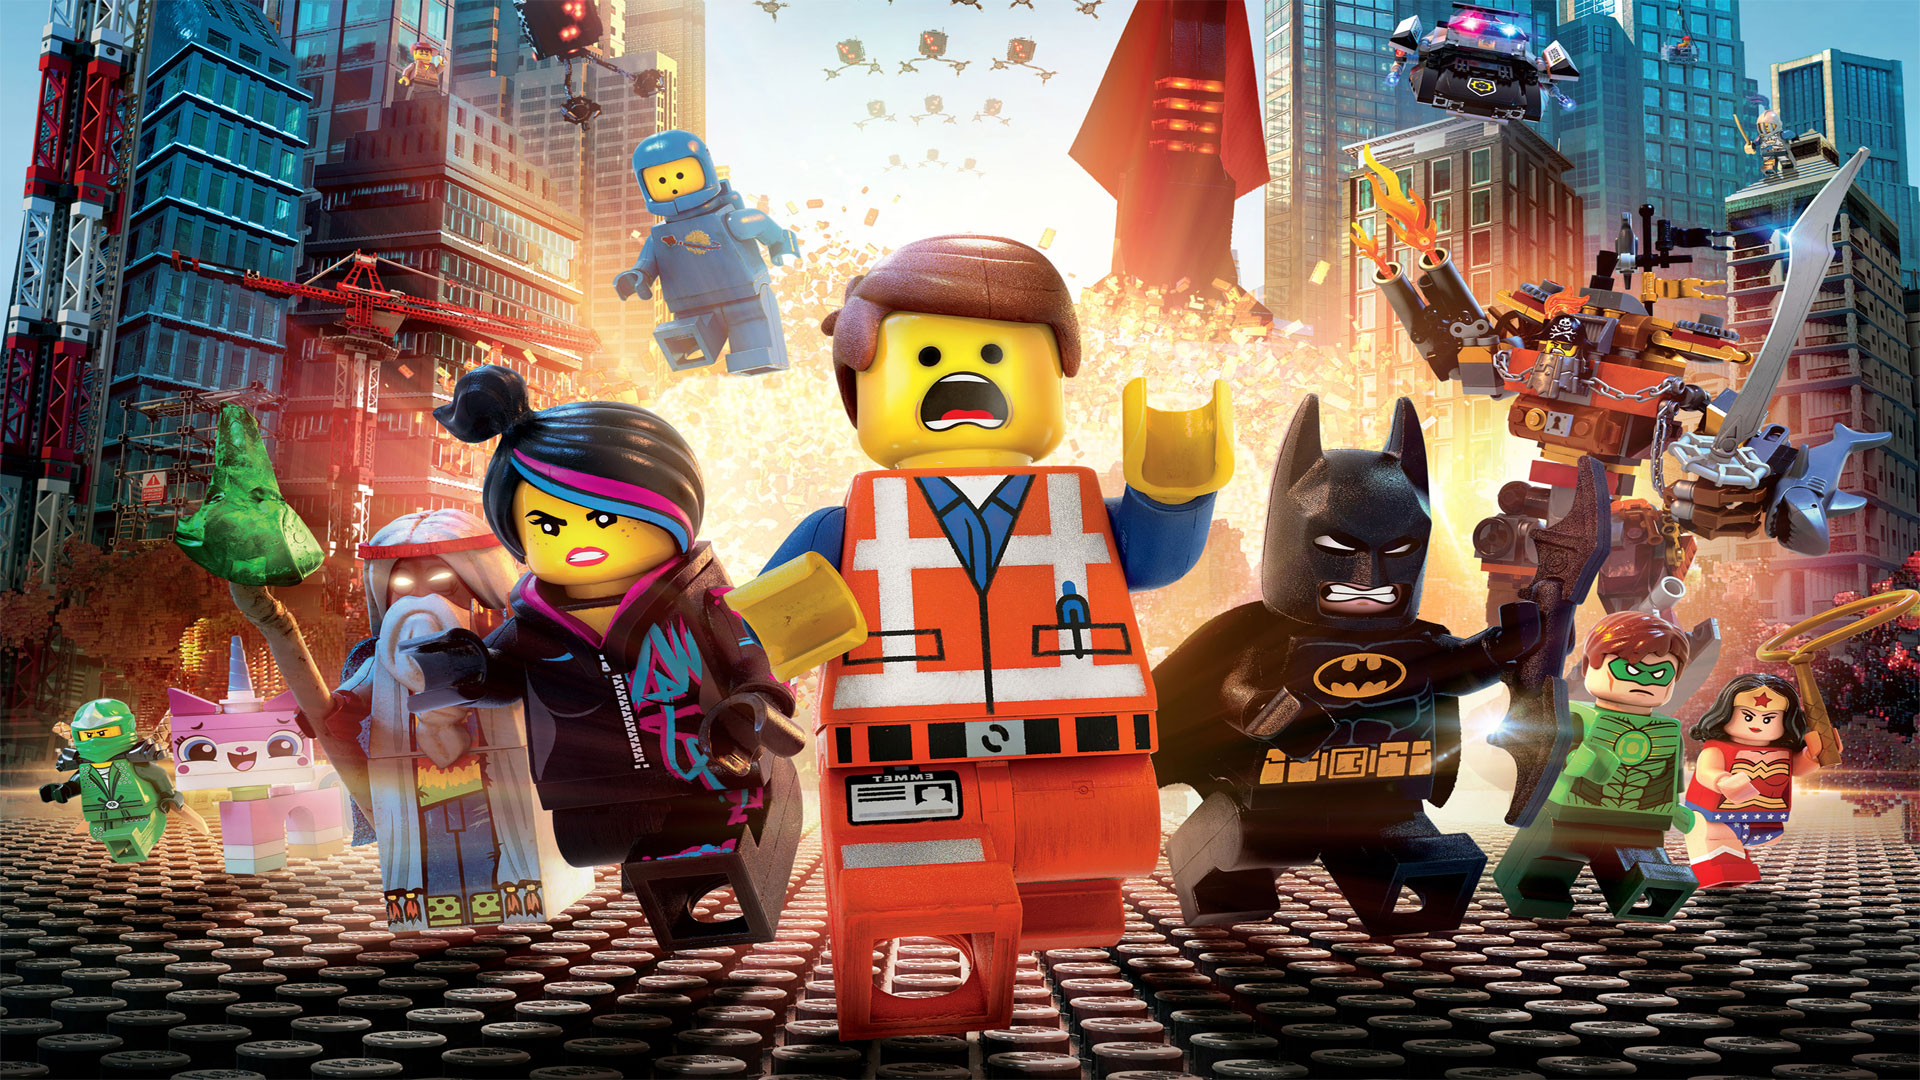 Lego Movie Wallpaper